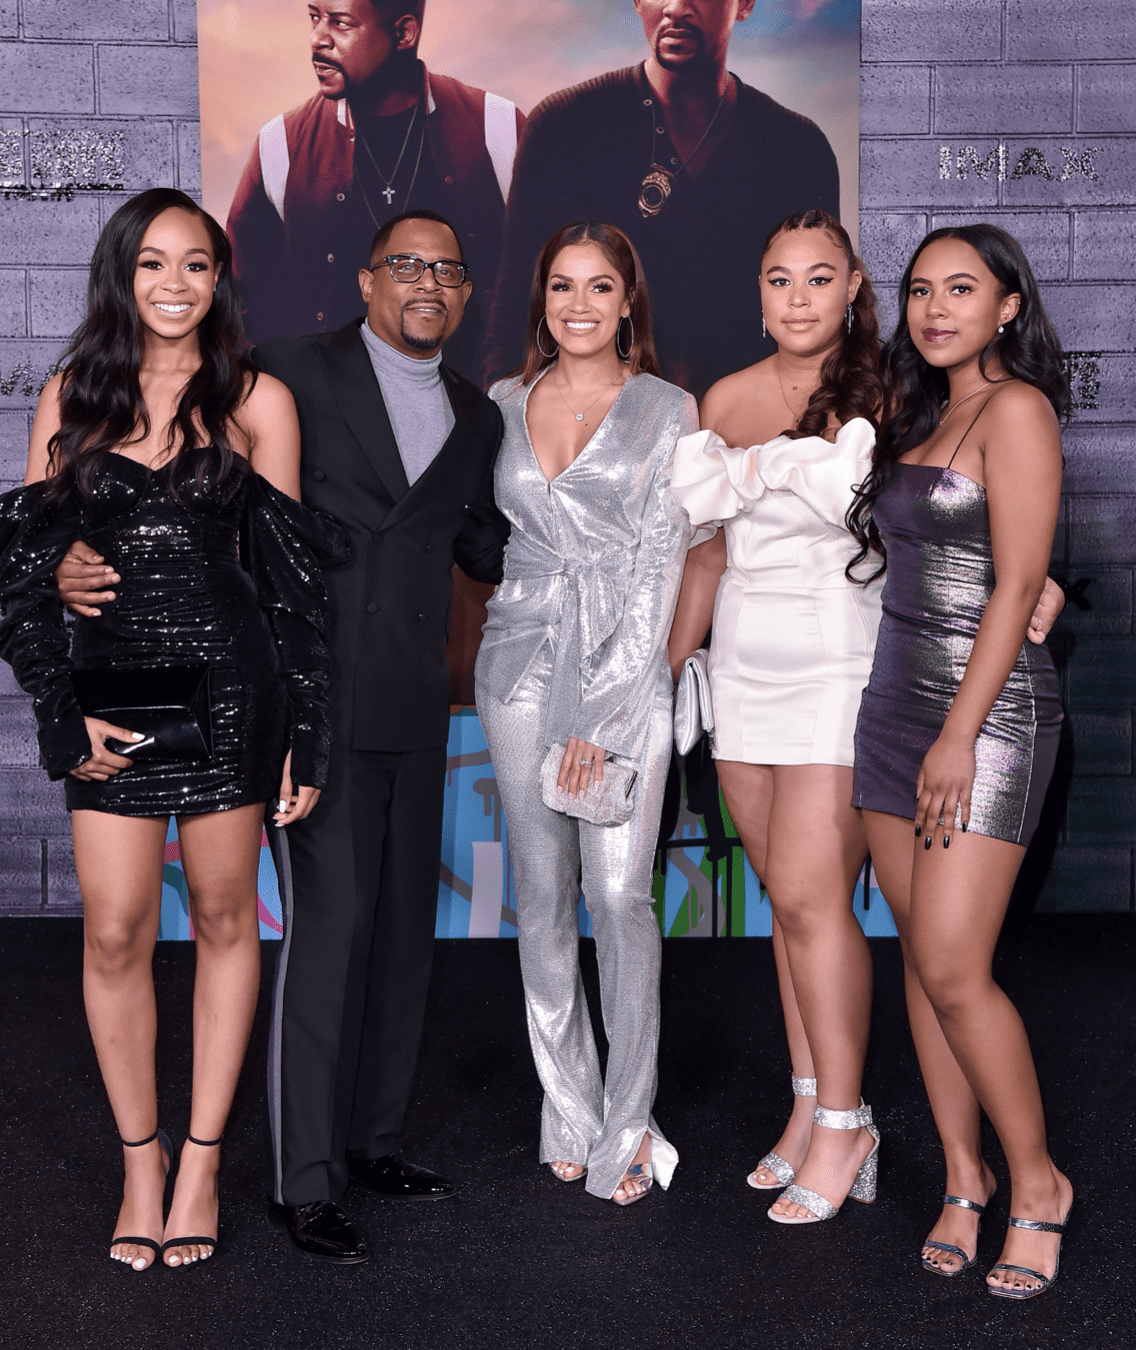 """Martin Lawrence, Roberta Moradfar and family attend the Premiere of Columbia Pictures' """"Bad Boys for Life"""" on January 14, 2020 in Hollywood, California.  